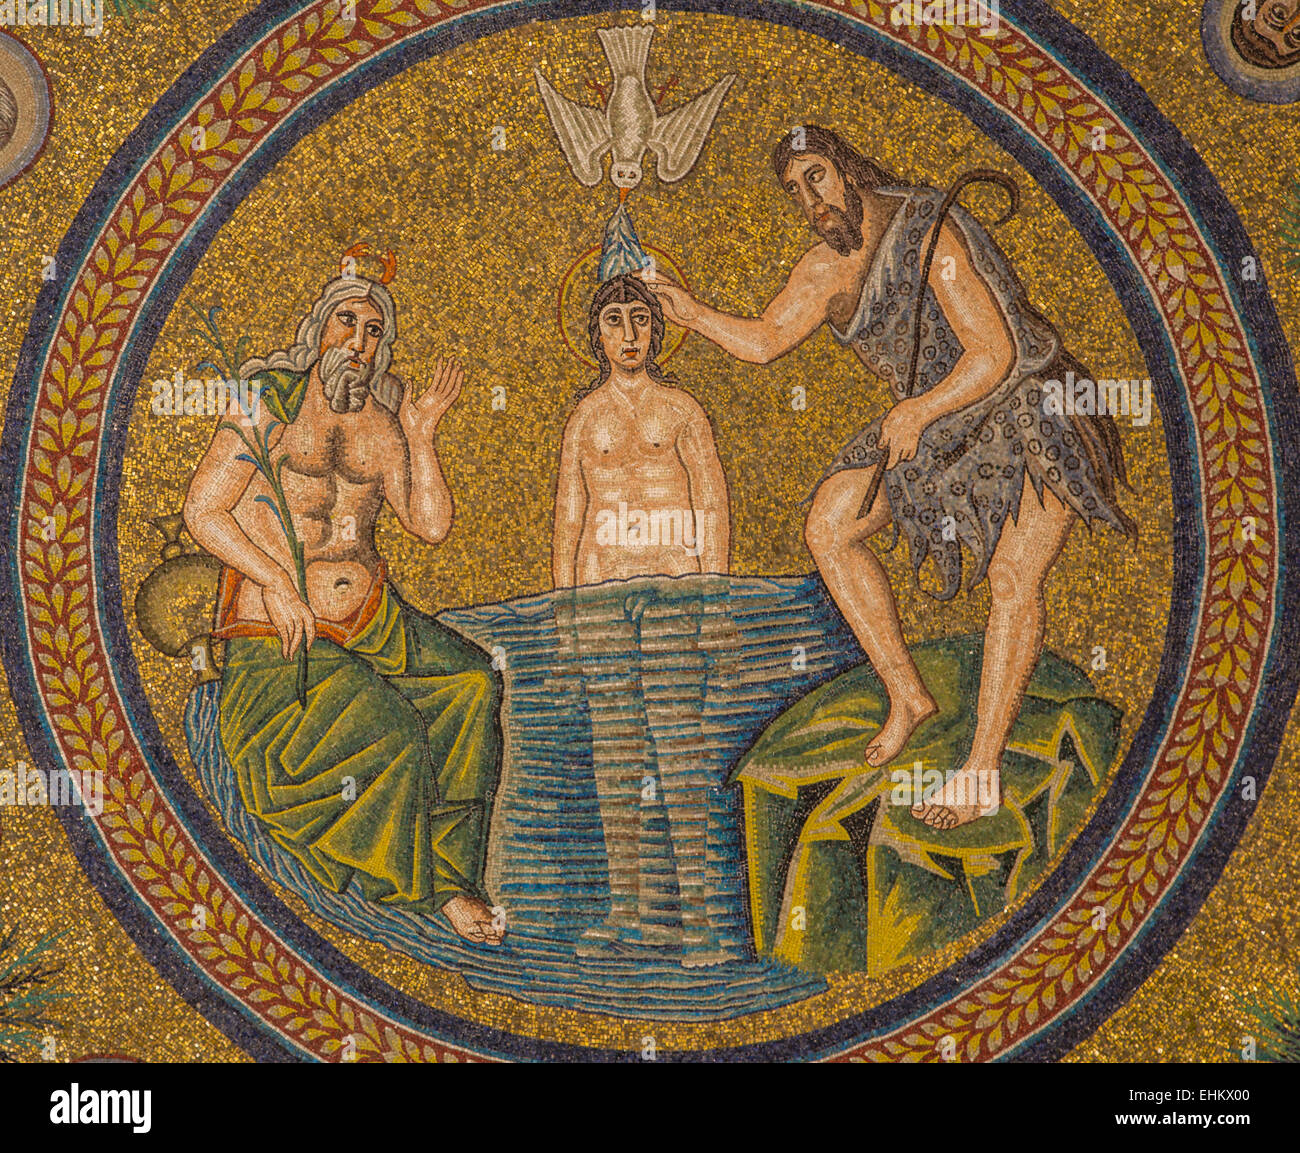 mosaic of the baptism of Jesus by Saint John the Baptist, Arian Baptistry, Ravenna, Italy - Stock Image